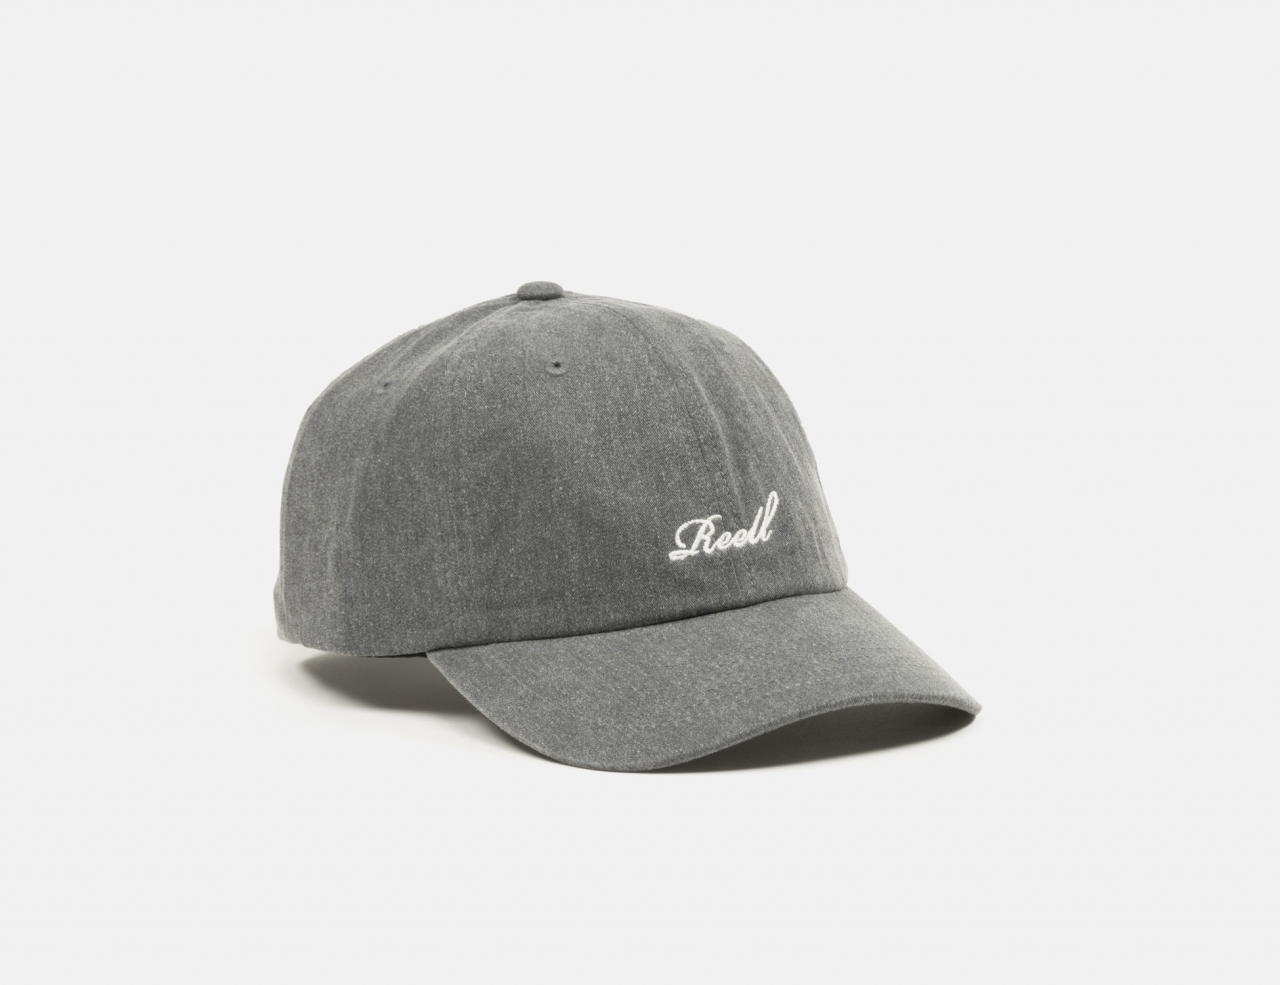 Reell Jeans Single Script Cap - Washed Charcoal